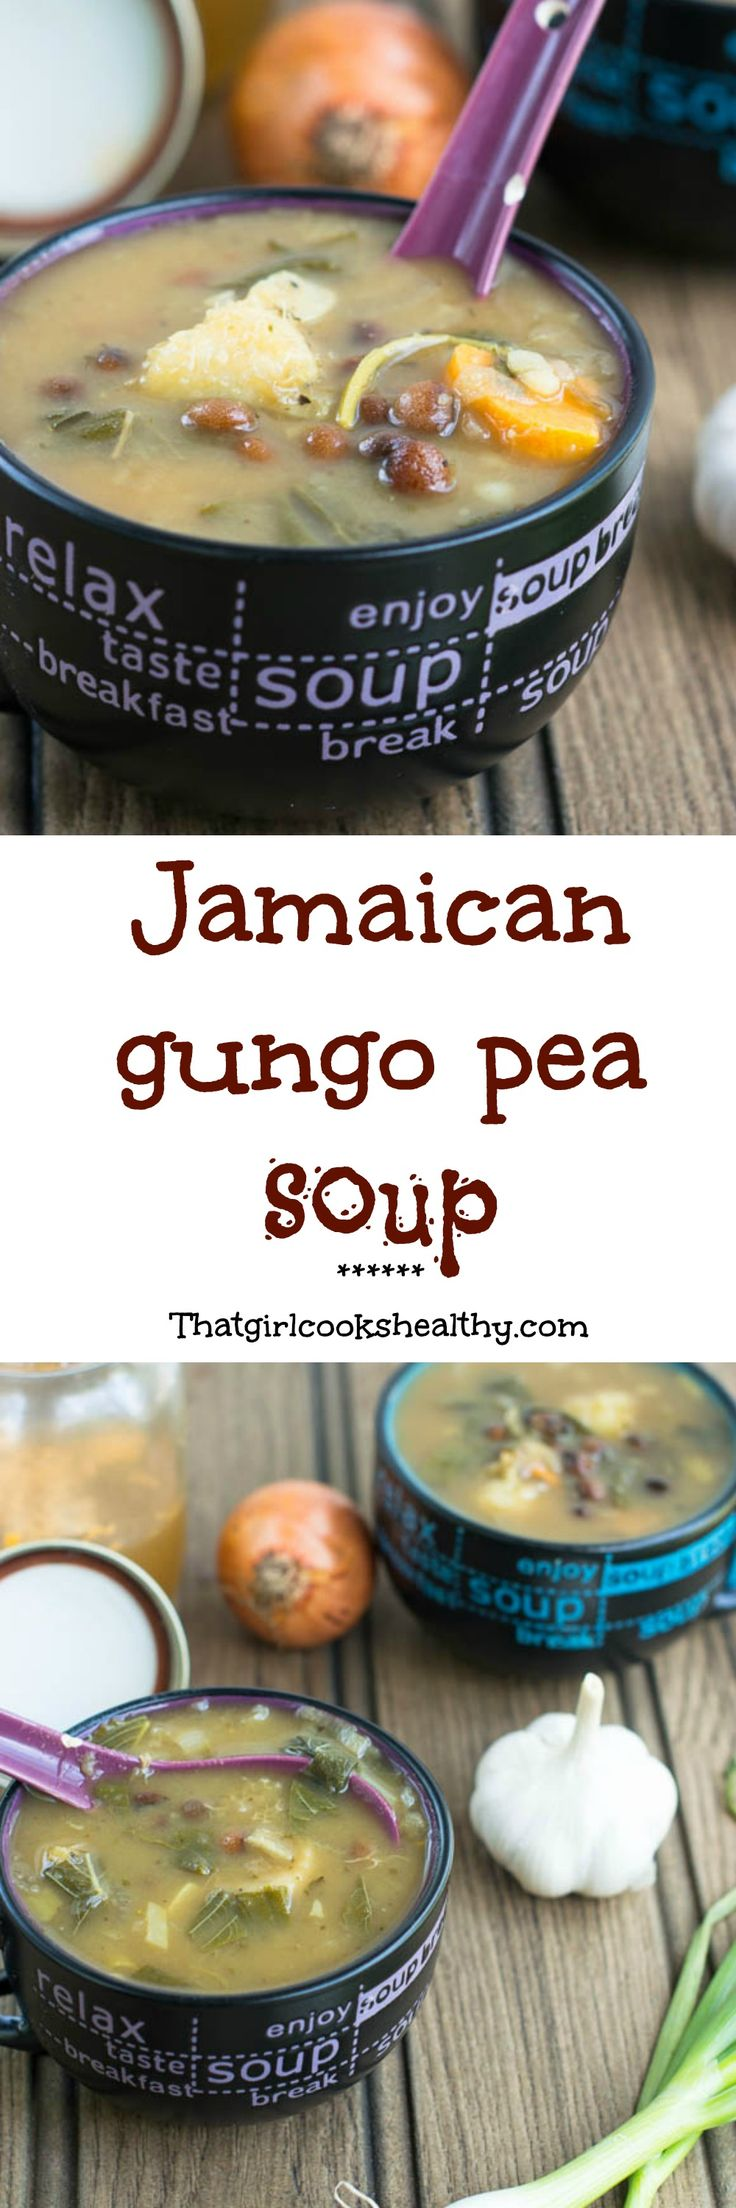 Light and hearty Jamaican gungo peas soup - a copy cat version that's vegan styleDuring the summer period soup is probably the last thing on your mind. I know when I'm feeling hot and sweaty (excuse the gross description) the last thing on my mind is to consume something that's hot - are you cra